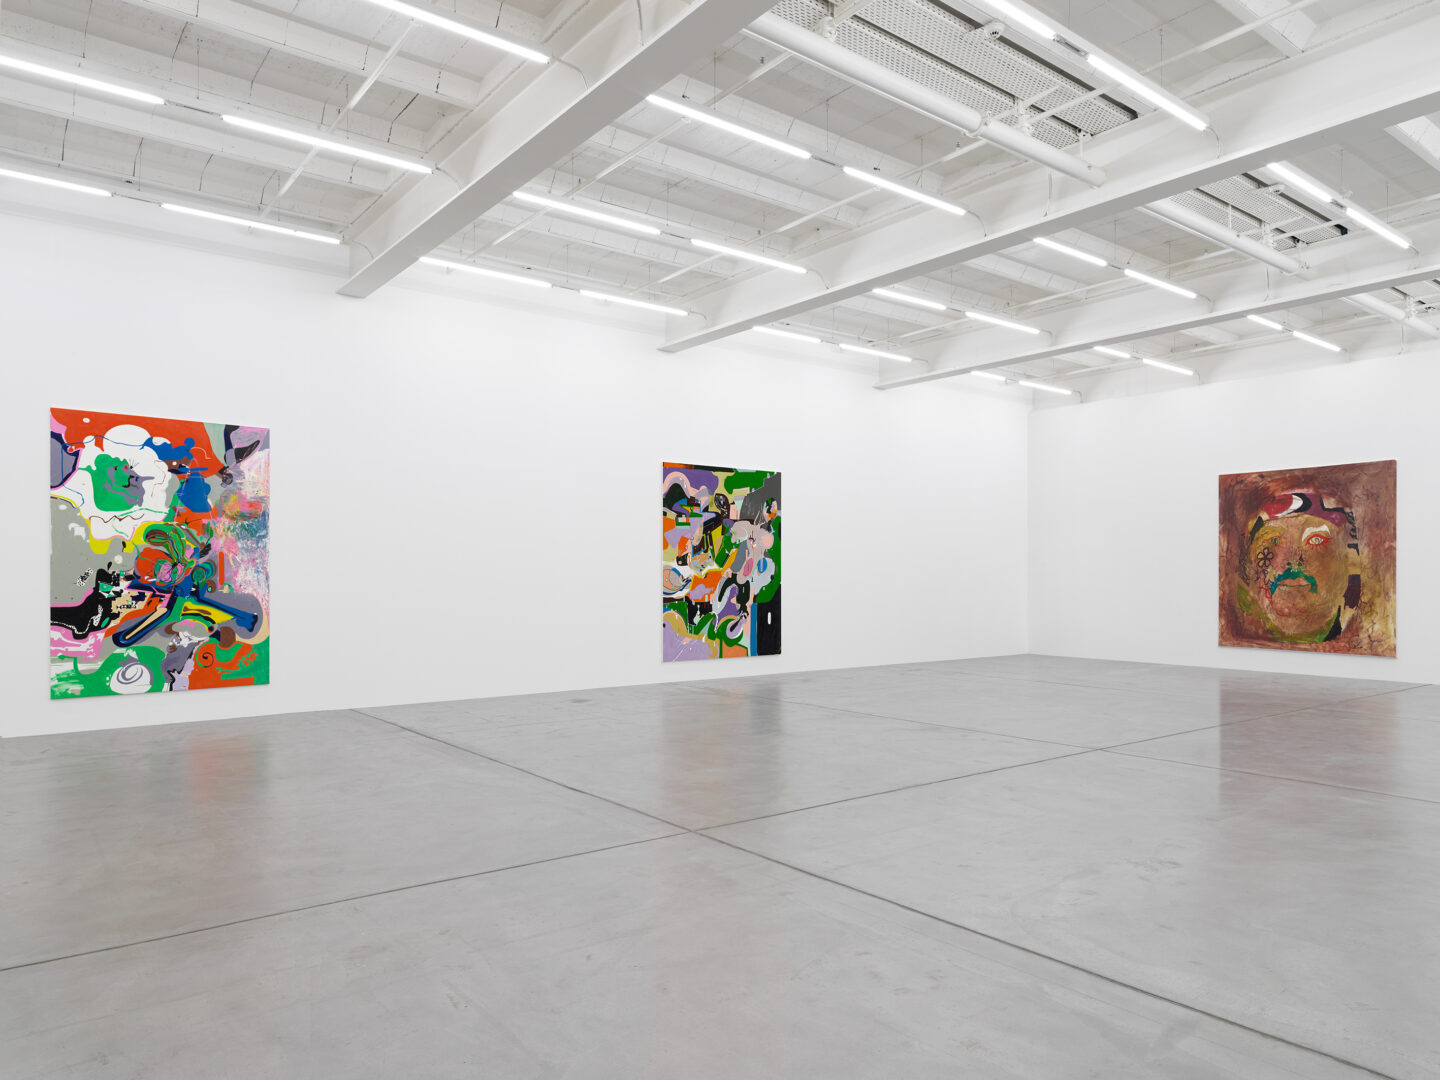 Exhibition View Michael Williams Soloshow «New Paintings» at Galerie Eva Presenhuber, Zurich, 2019 / Photo: Stefan Altenburger / © Michael Williams / Courtesy: the artist and Galerie Eva Presenhuber, Zurich / New York